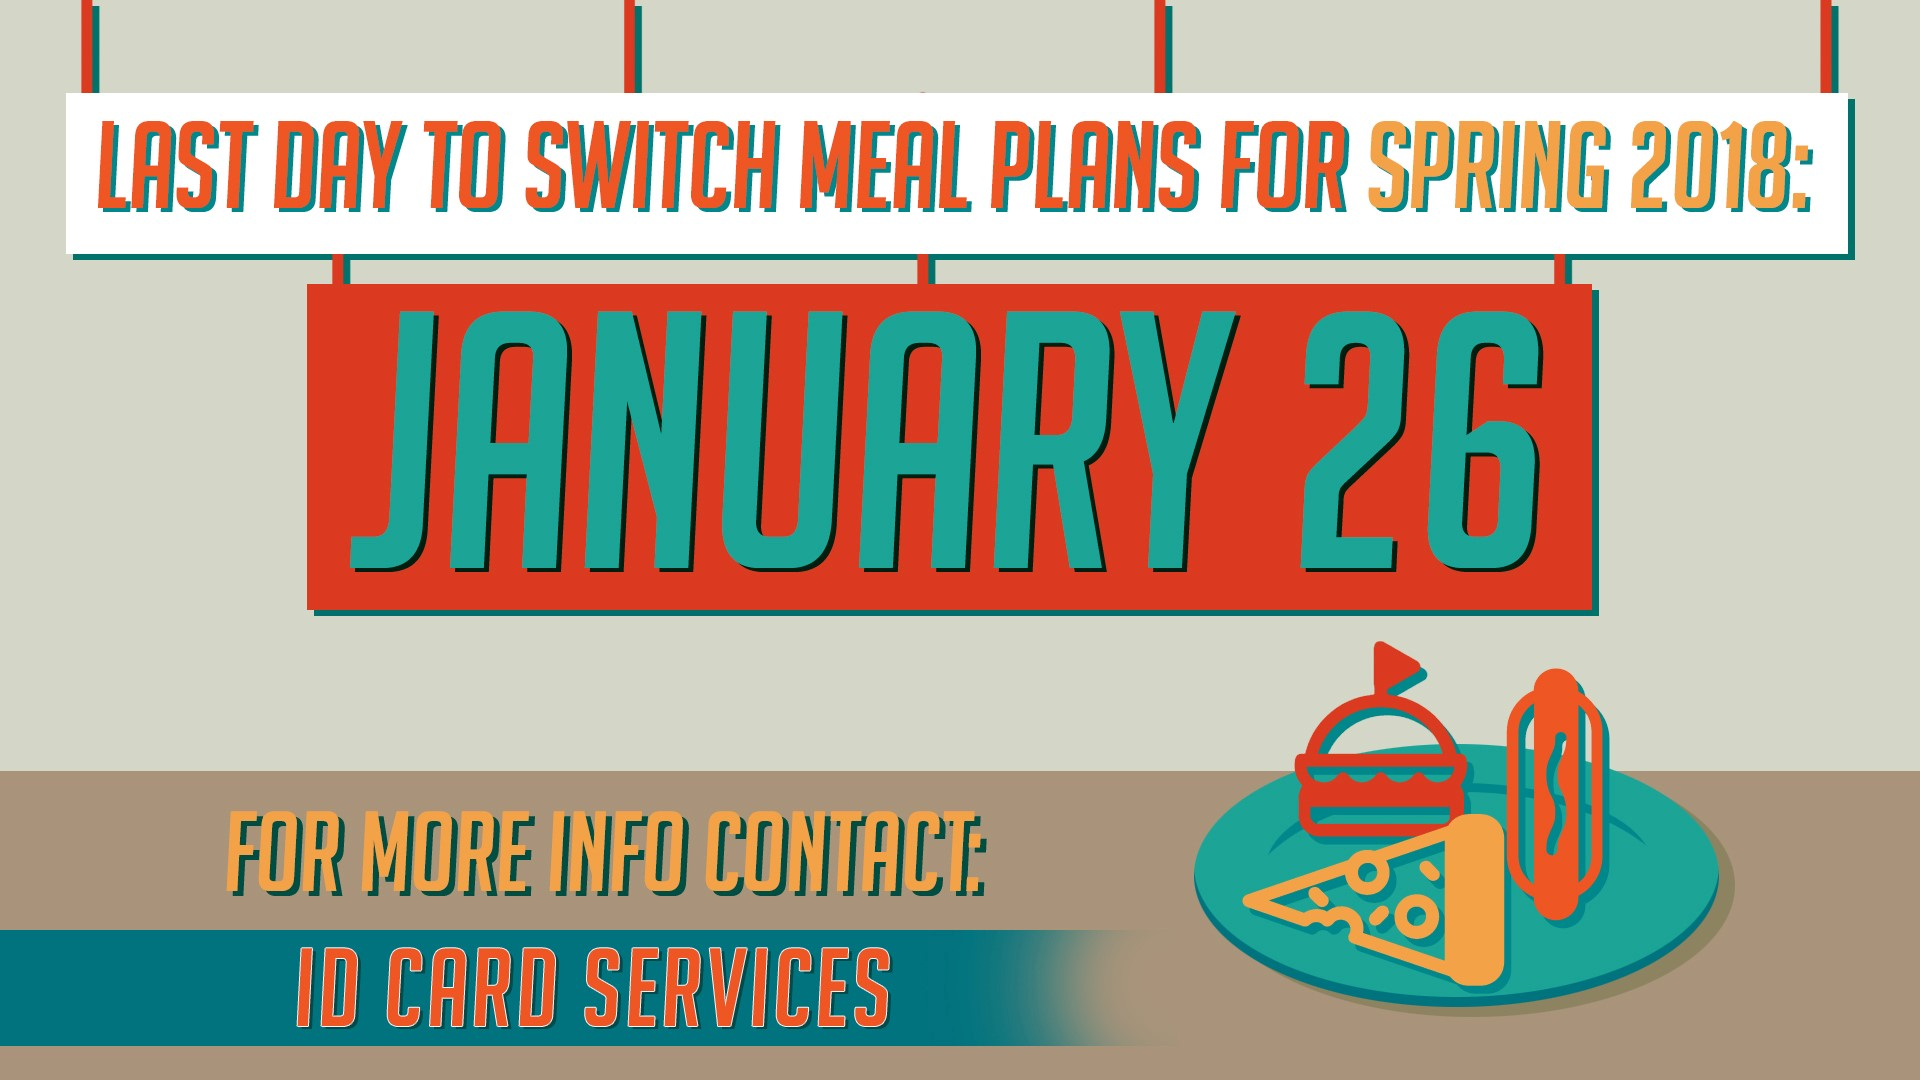 NMSU students wishing to change their Meal Plans may do so before Friday, Jan. 26. After that date, students will be locked-in to their current plan. As different students may have different options, we ask that you contact ID Card Services at 575-646-4835 or idsvs@nmsu.edu to implement the change. You may also stop by the ID Card Services Office in Room 137 of Corbett Center Student Union between the hours of 8 a.m. – 4:30 p.m. Monday-Friday. Please note that ID Card Services will be closed on Monday, Jan. 15, in observance of Martin Luther King Day.